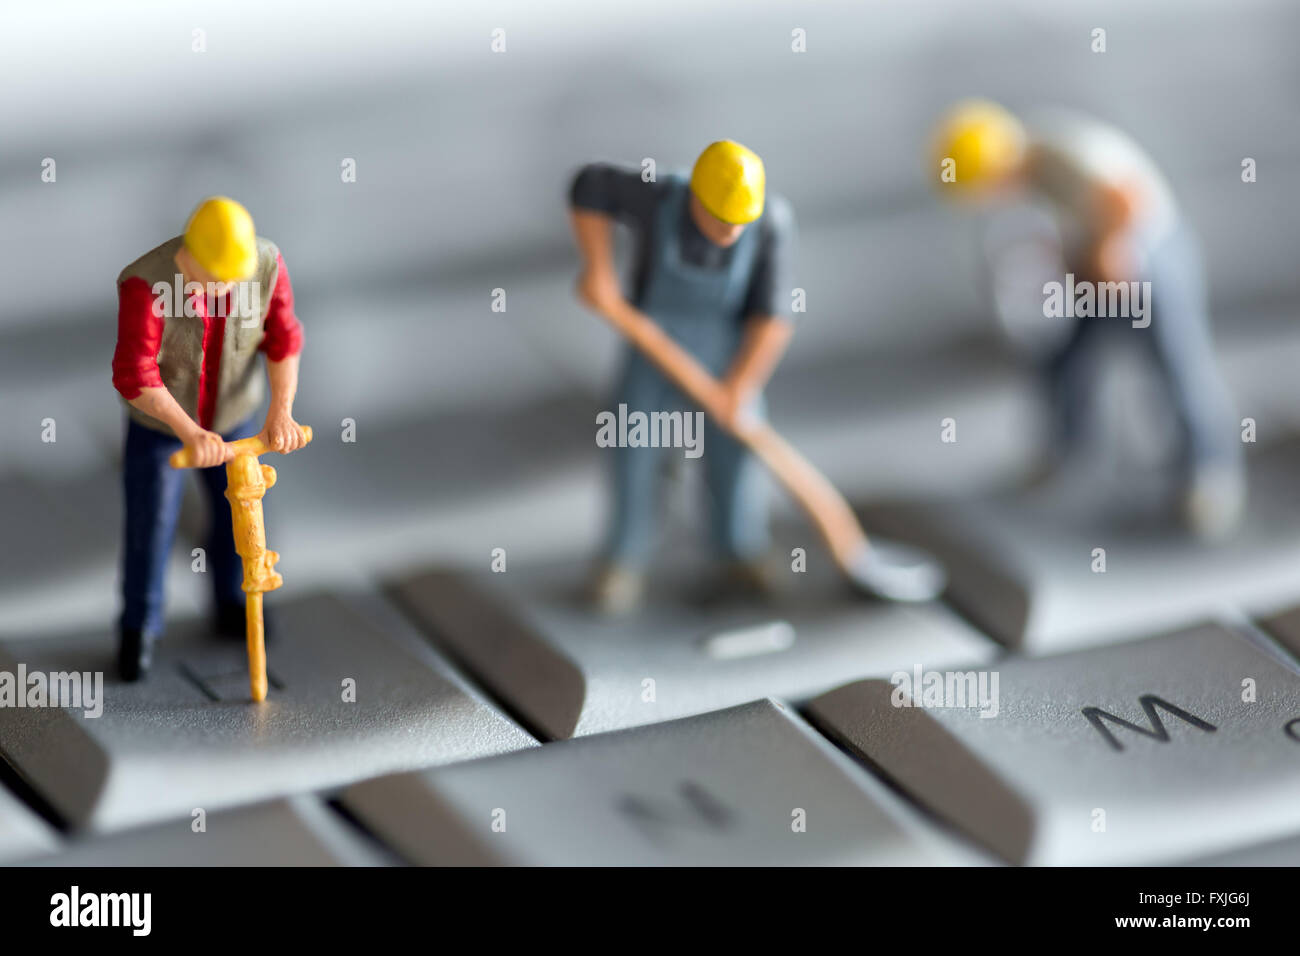 Close up concept stock photo depicting data mining or theft of computer information. - Stock Image